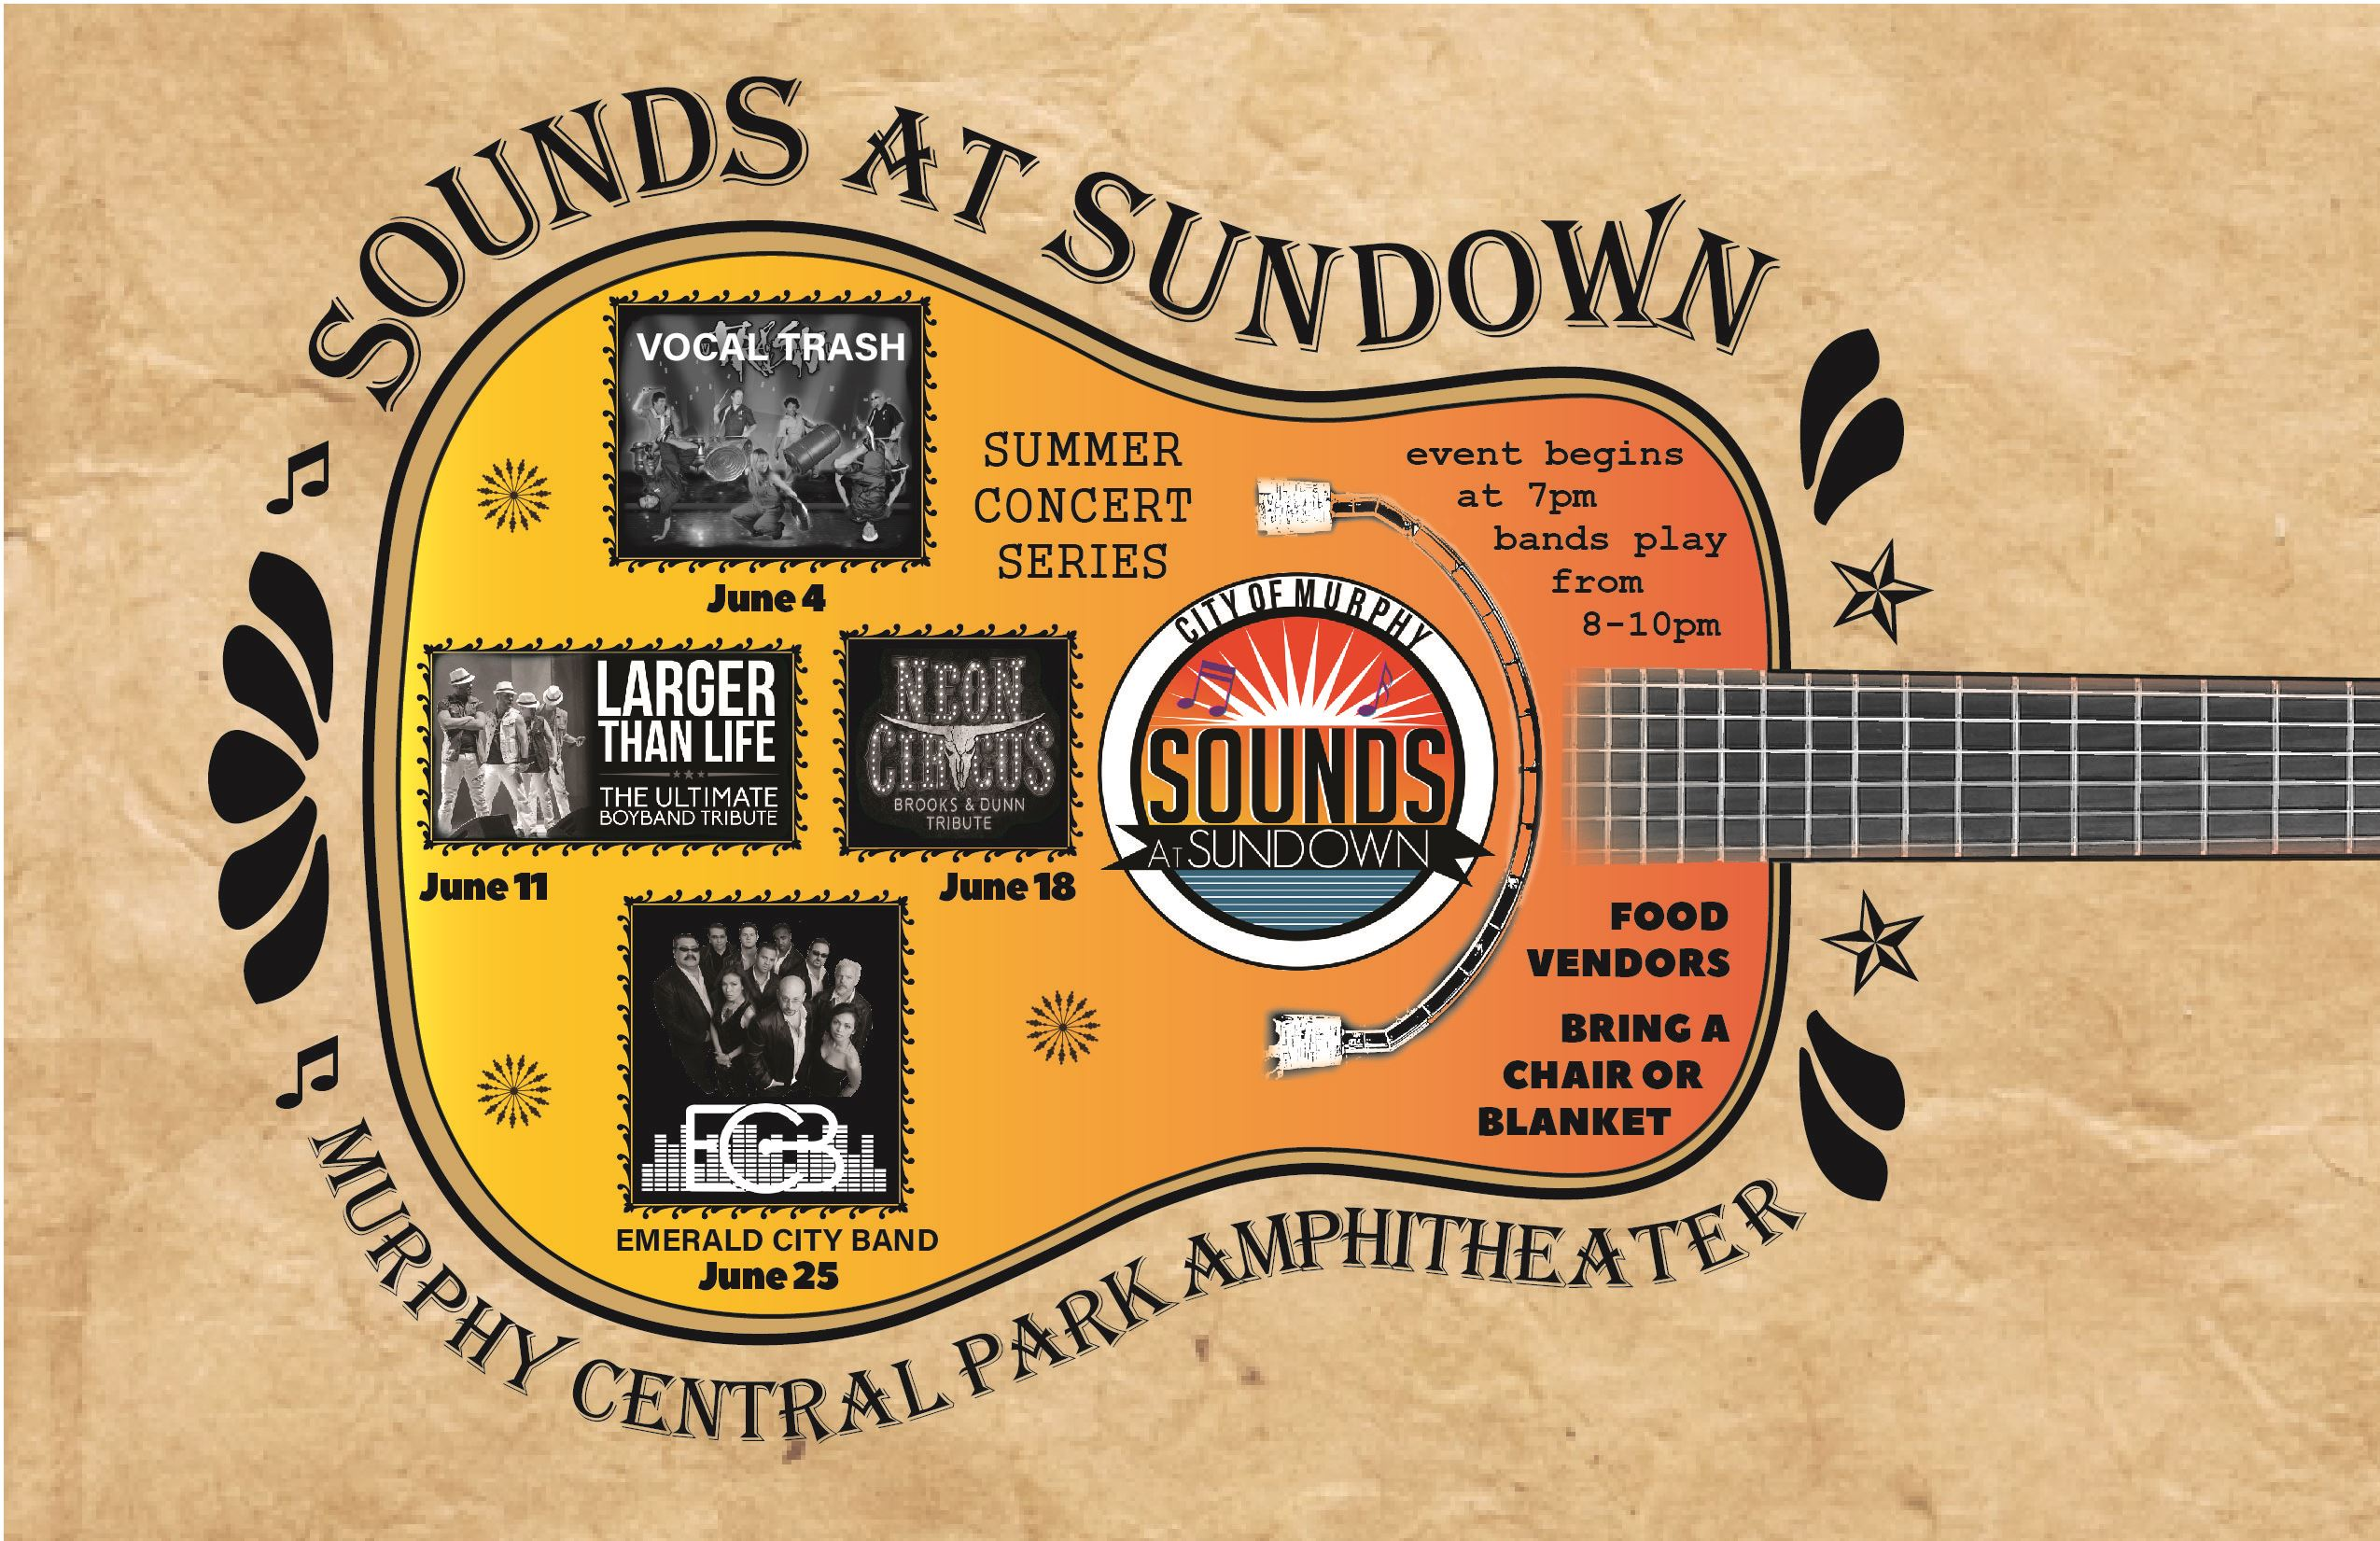 Sounds at Sundown Ad 2021